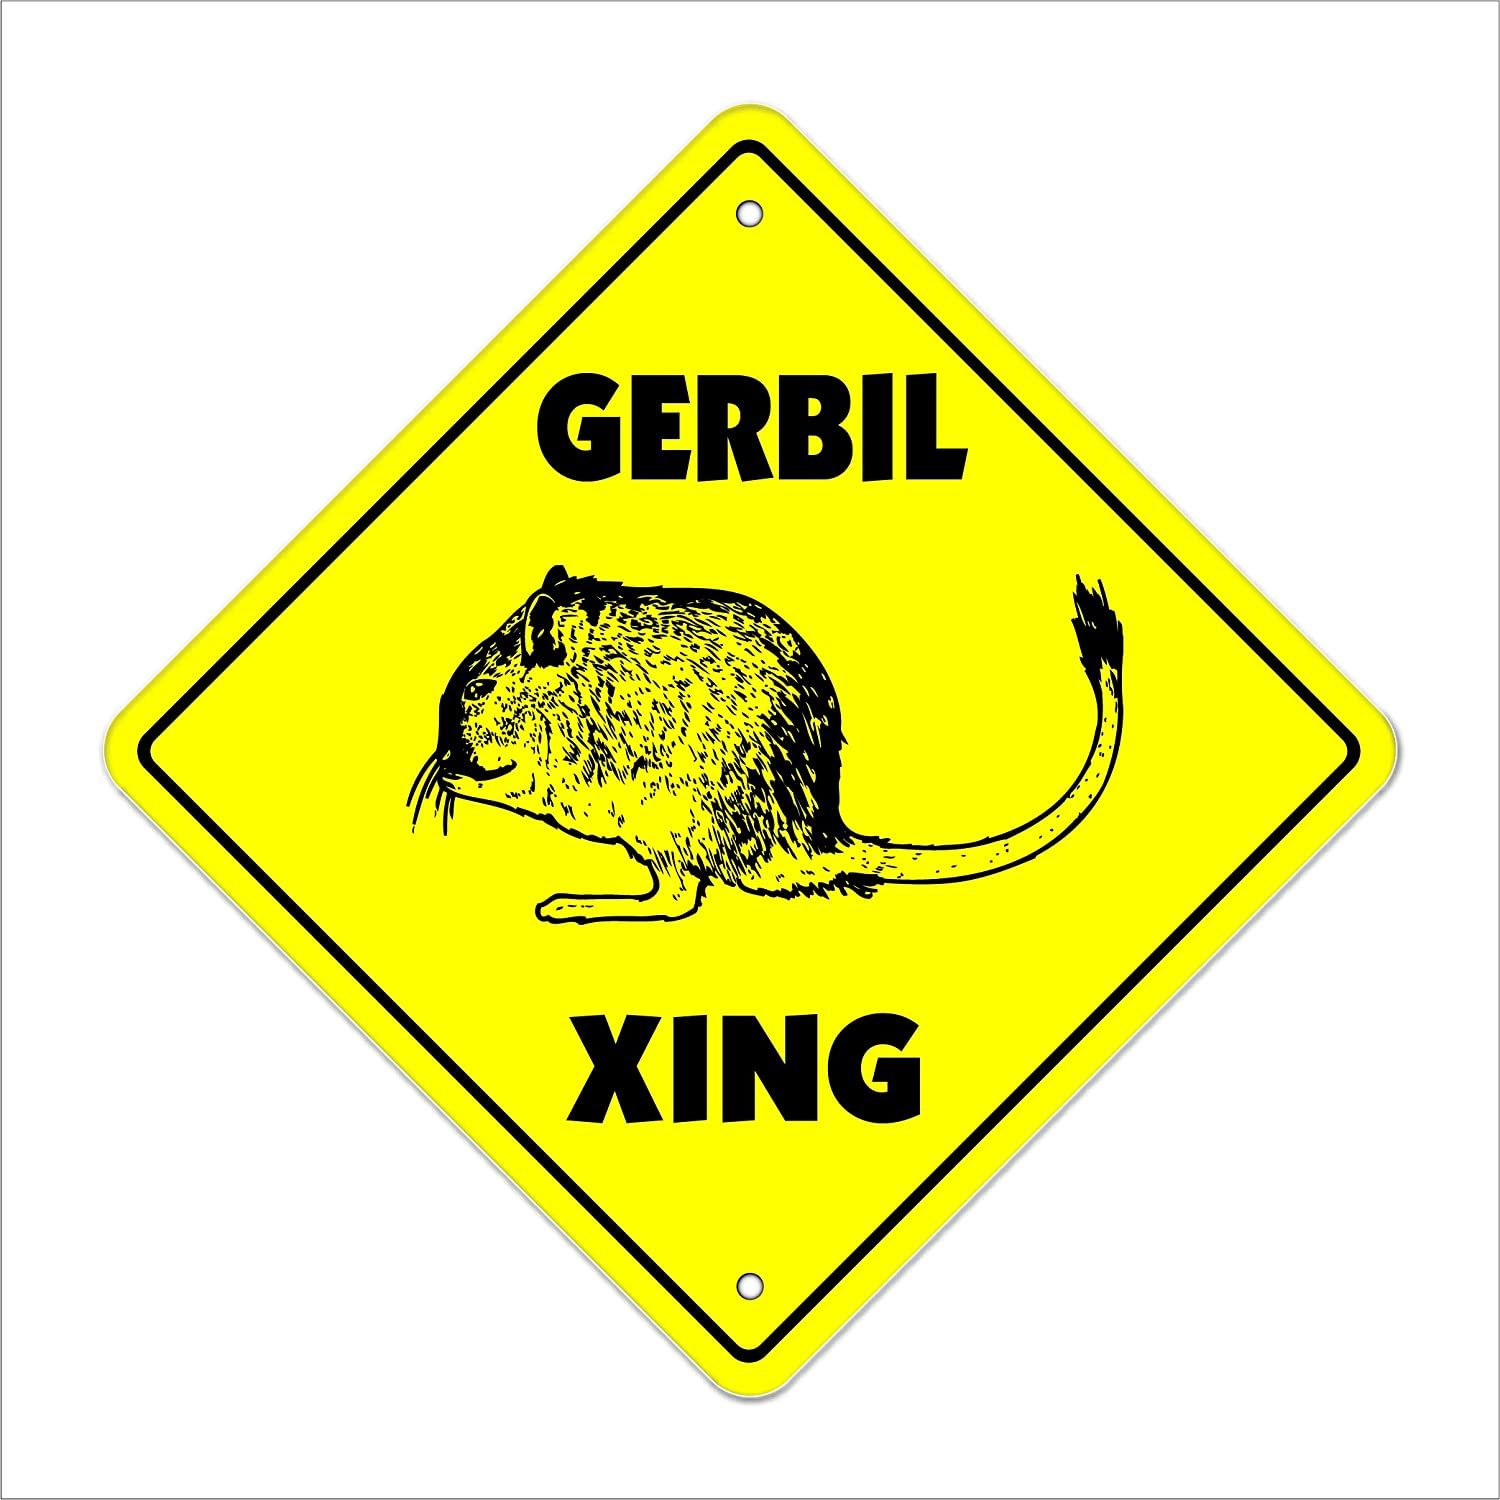 Gerbil Crossing Sign Zone Xing Plast Outdoor Cheap bargain Indoor Tall Ranking TOP2 20